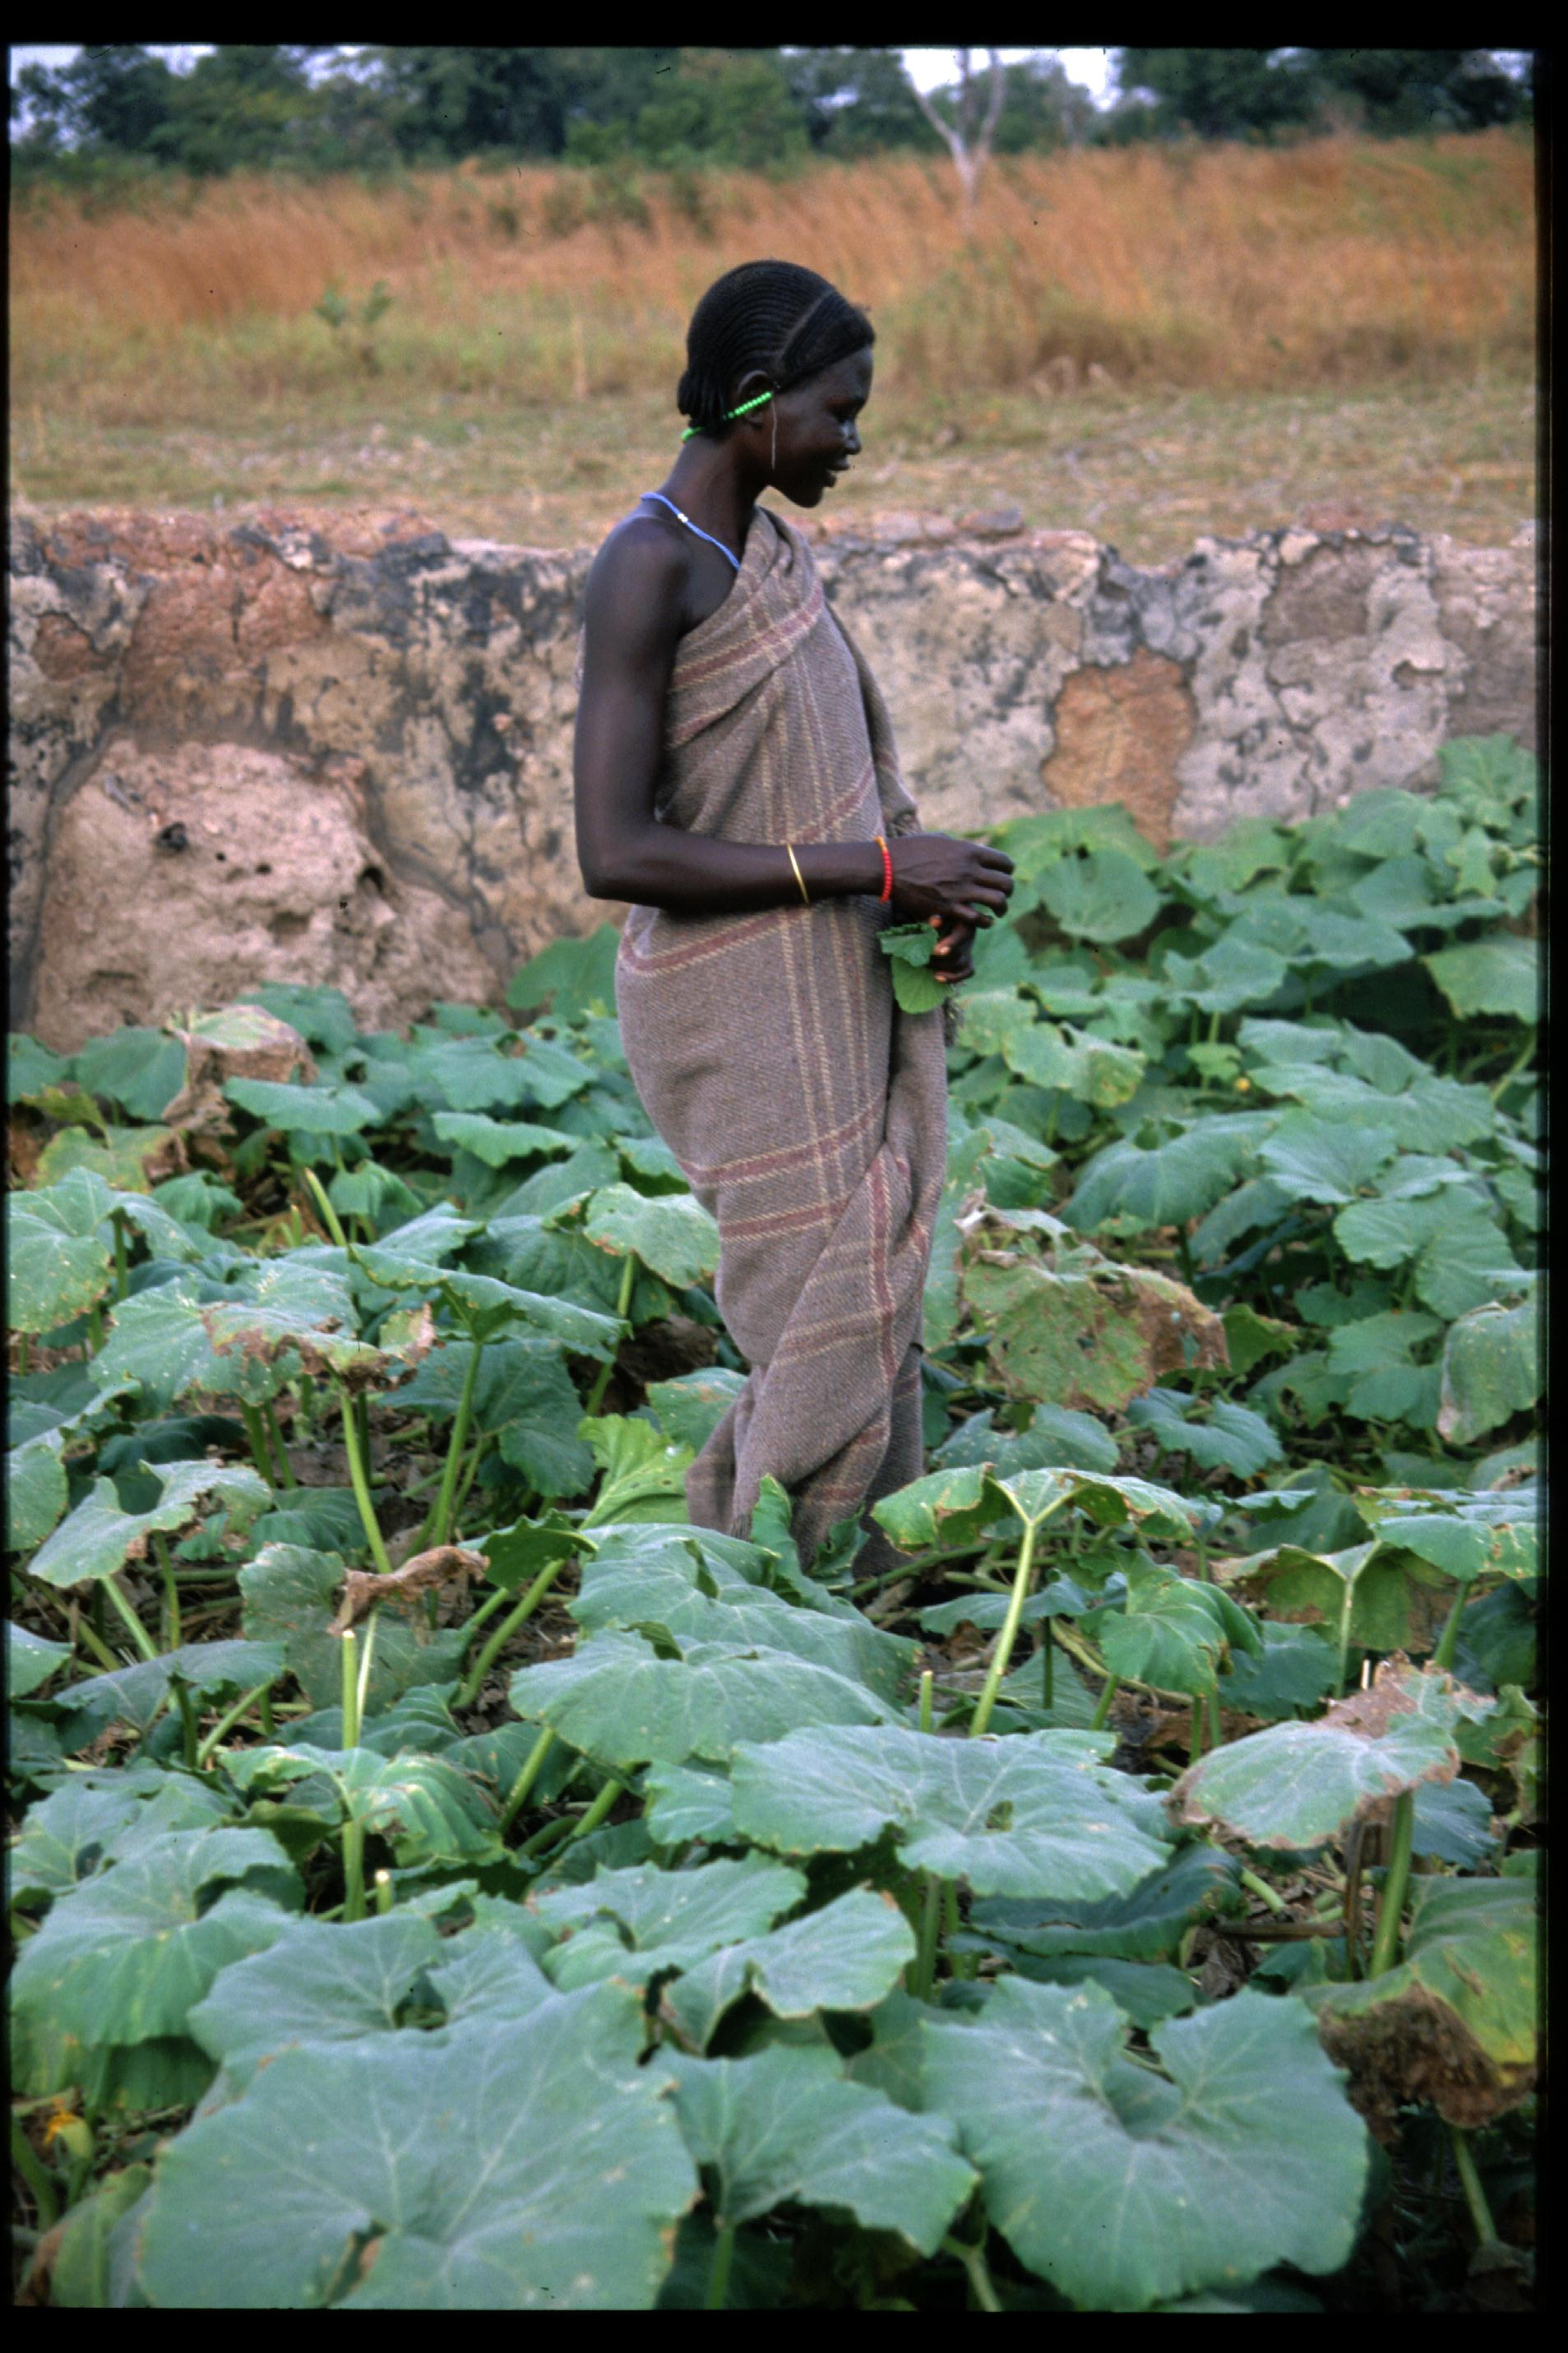 Sudan 1996 (Photo by Tom Haskell)